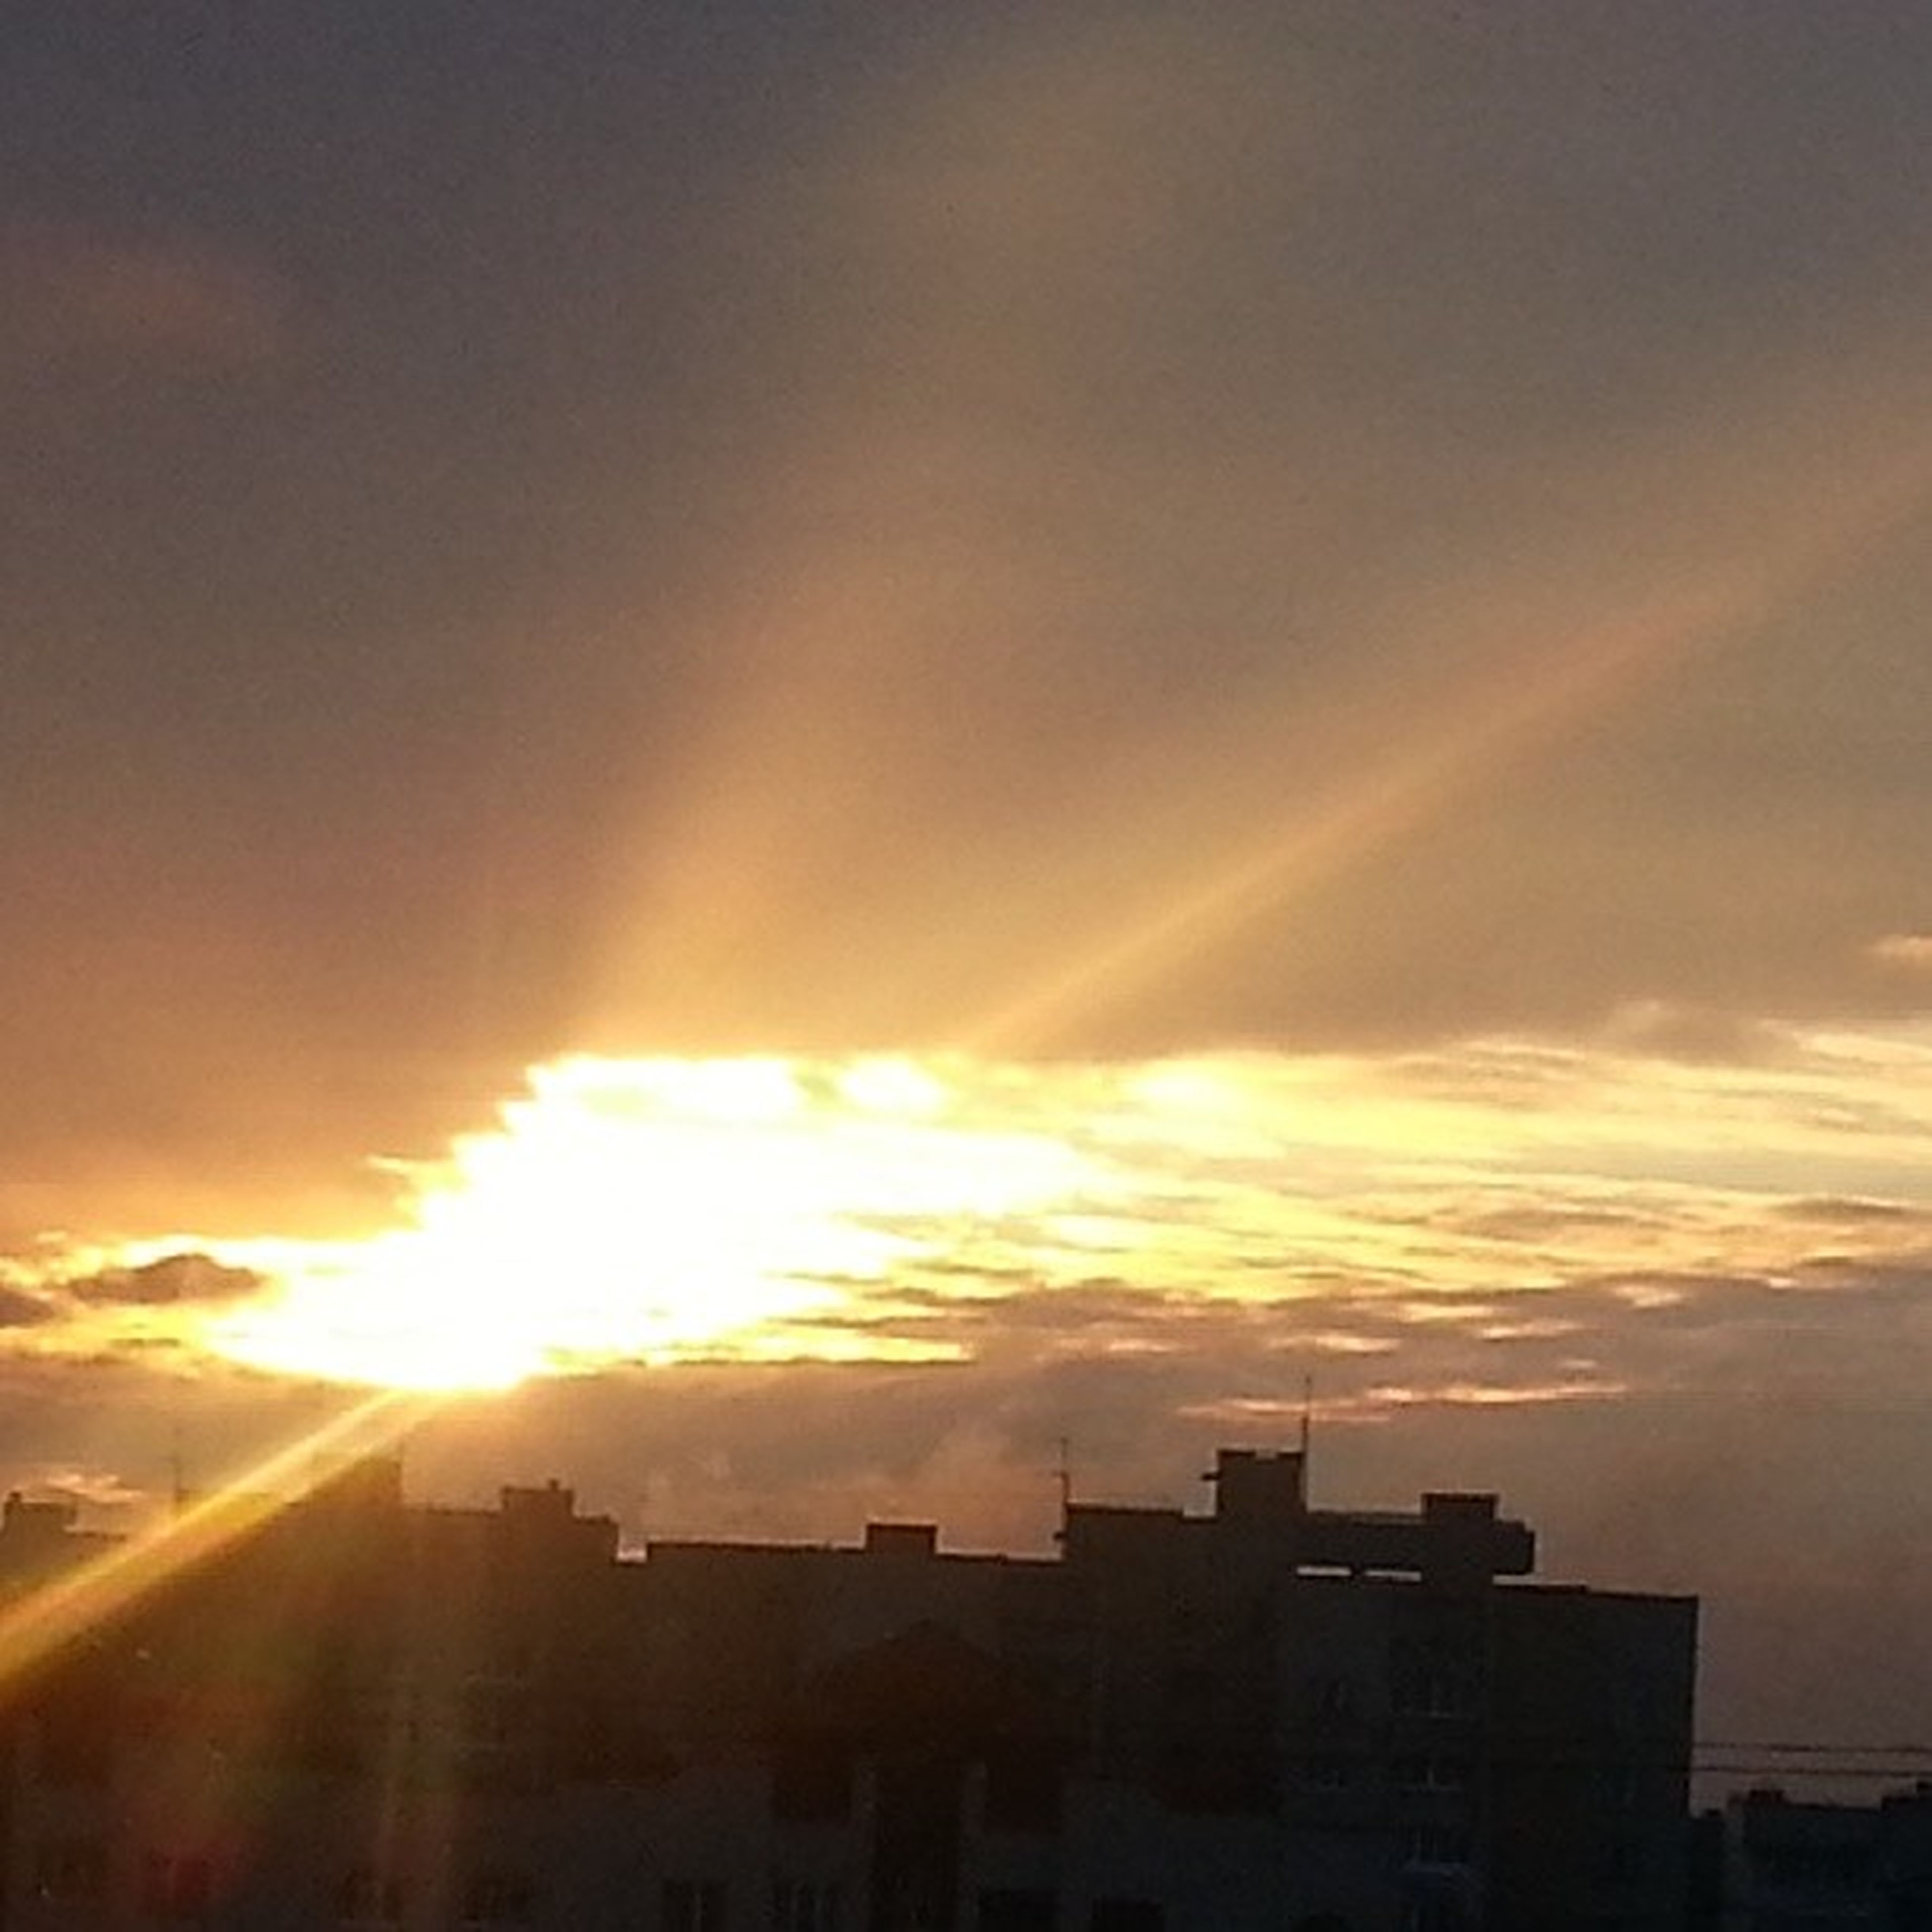 sunset, architecture, building exterior, sun, built structure, orange color, sky, sunbeam, sunlight, city, silhouette, lens flare, cloud - sky, building, outdoors, residential building, low angle view, residential structure, nature, no people